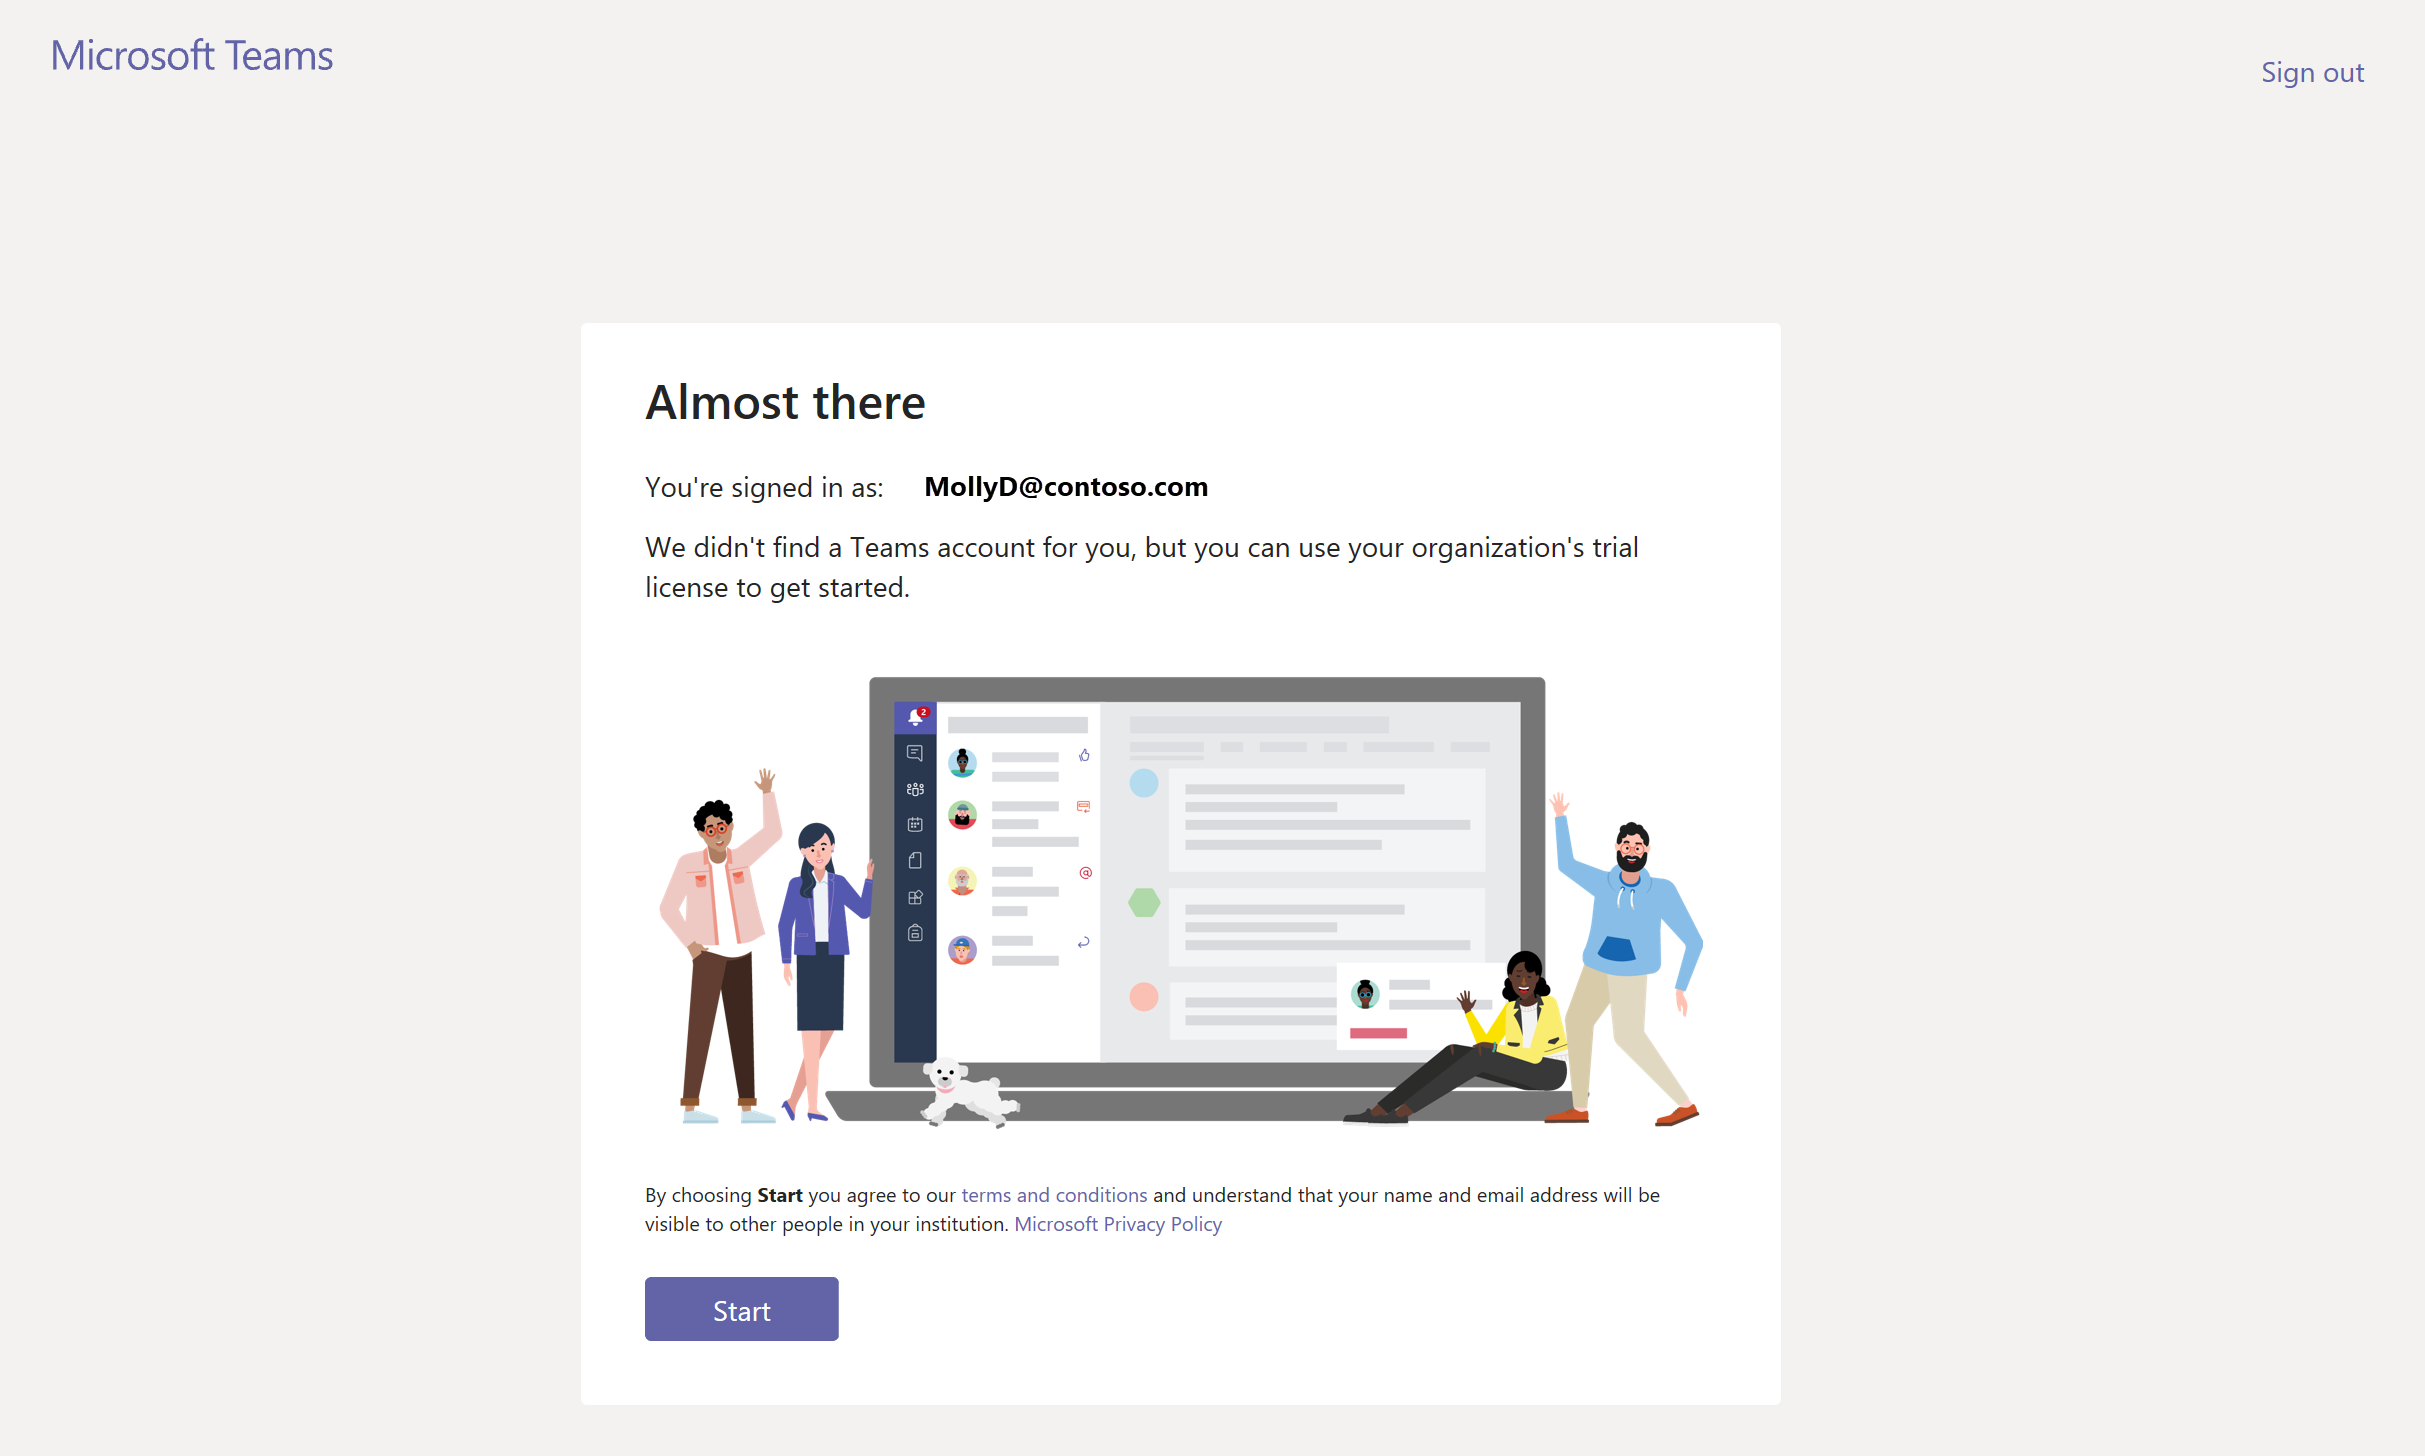 Free 1-year trial offer for Microsoft Teams